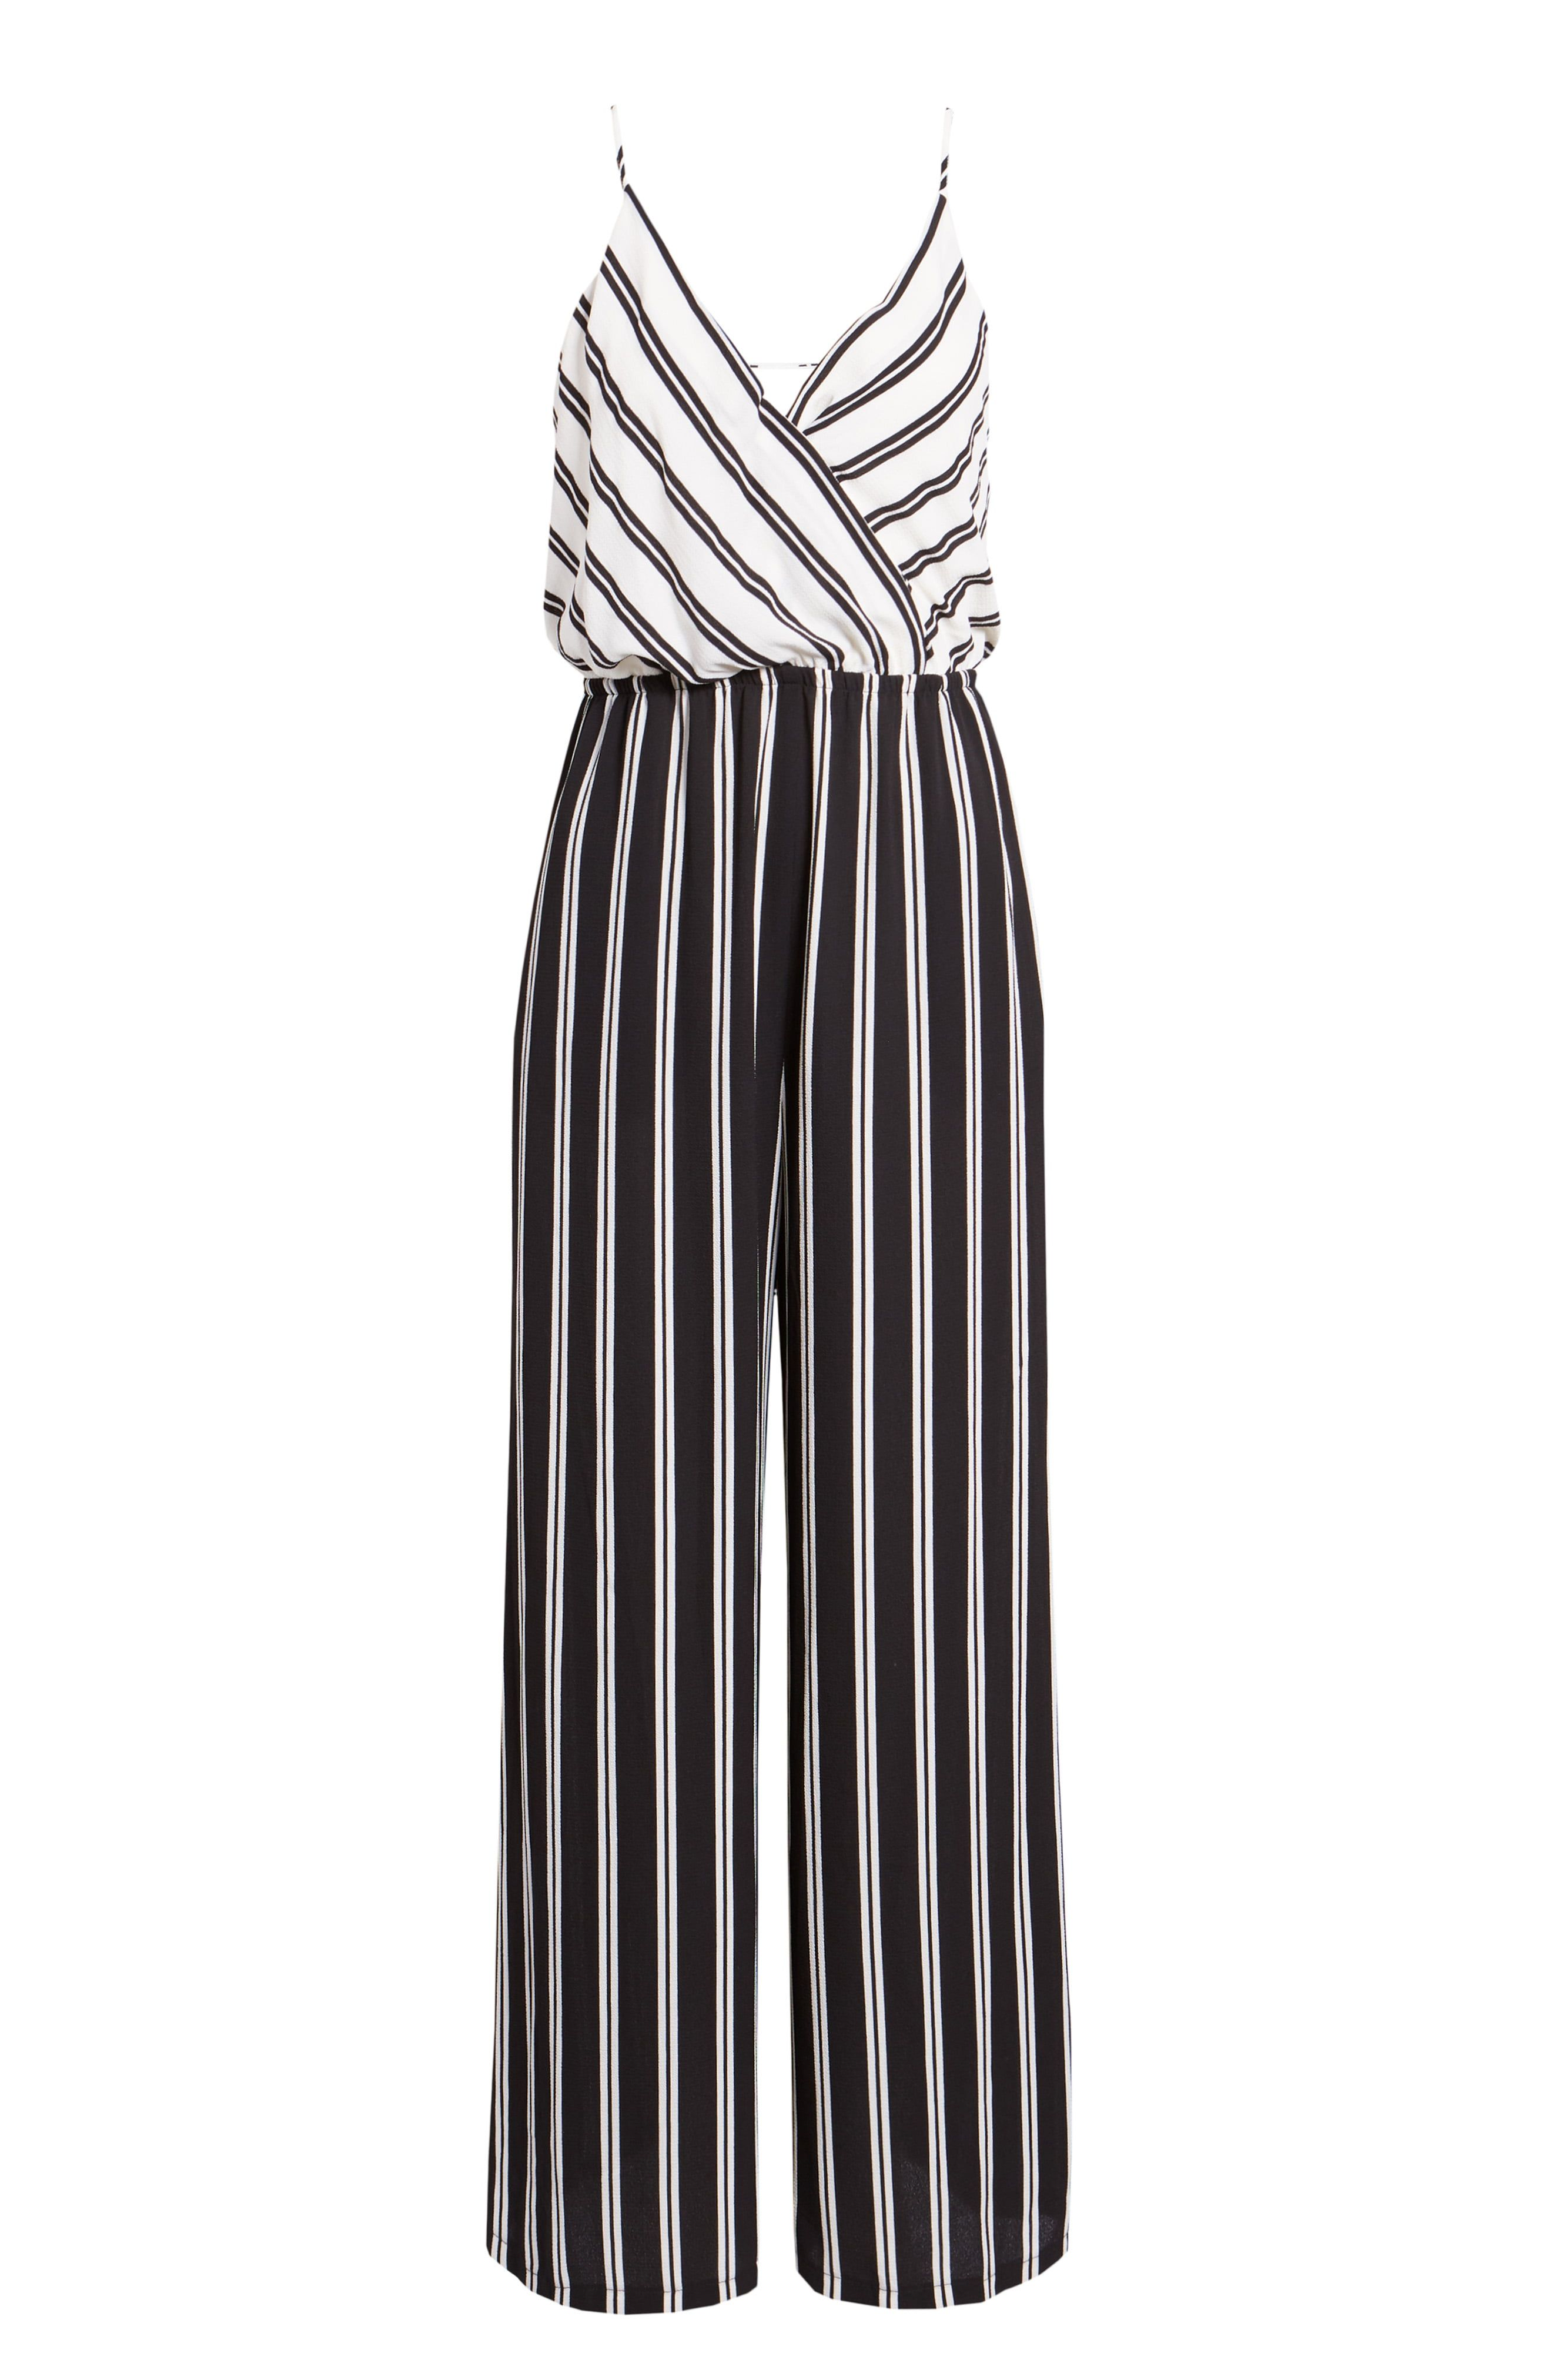 Black-and-white stripes go from light to dark, giving graphic dimension and a chic two-piece look to this one-and-done jumpsuit with a blouson silhouette. Style Name:Chelsea28 Faux Wrap Jumpsuit. Style Number: 5979369. Available in stores.